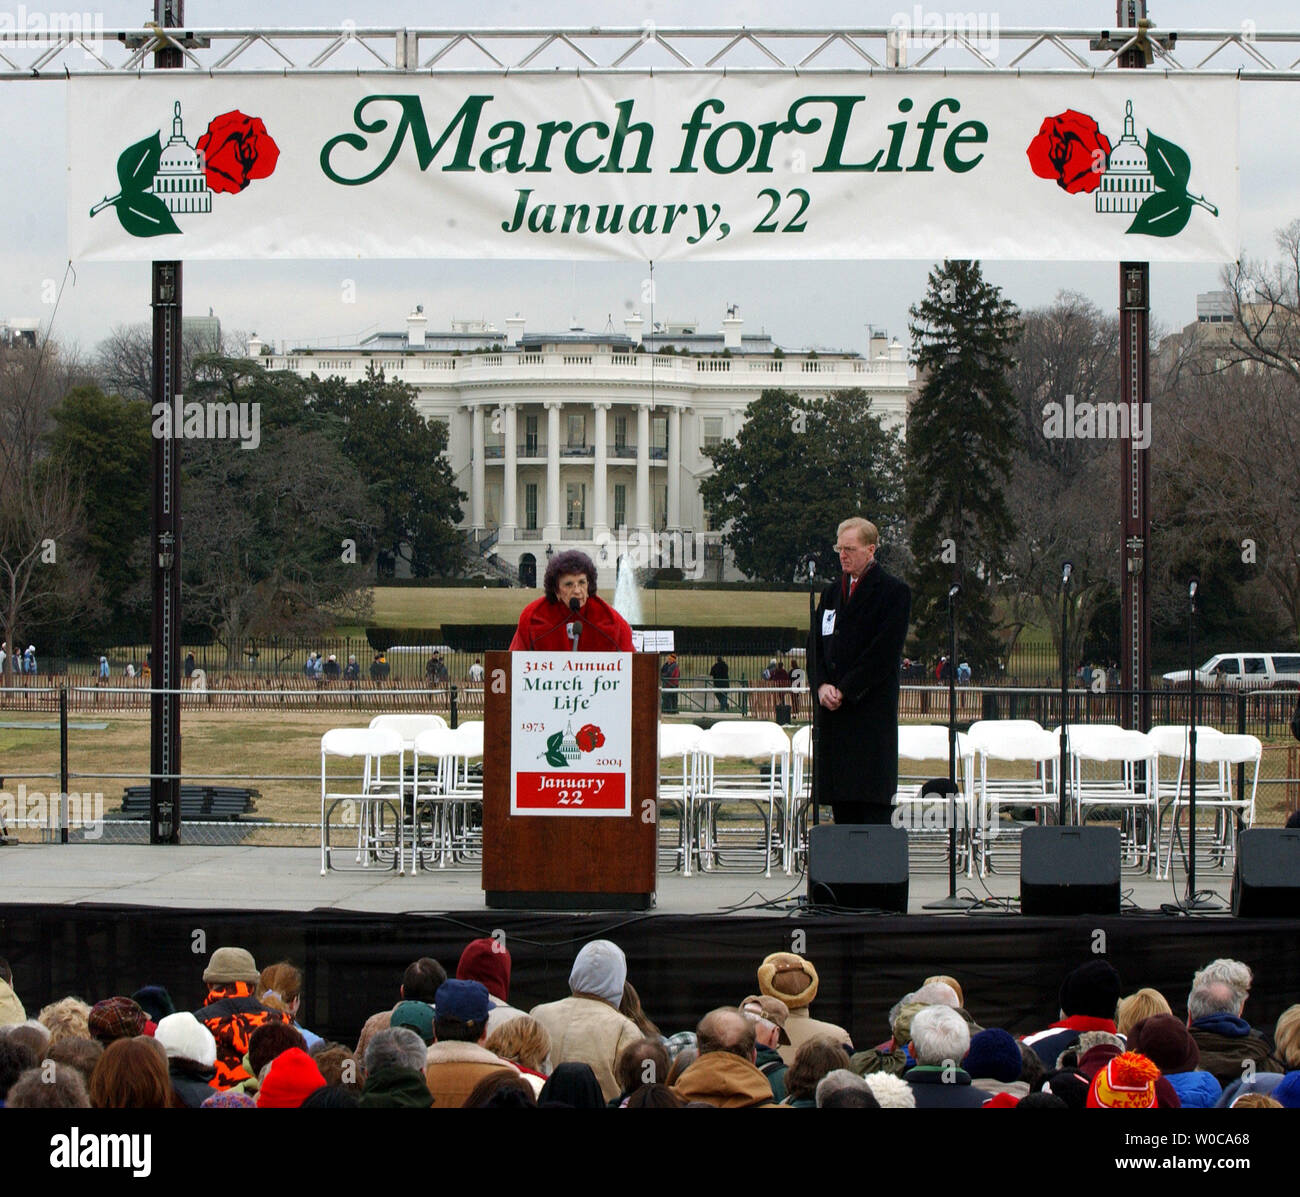 Nellie Gray, President of the March for Life Fund, addresses thousands of protestors assembled near the White House to march against abortion rights on January 22, 2004, in Washington. This is the 31st annual march held on the anniversary of the Supreme Court decision Roe vs. Wade which legalized abortions across the U.S.   (UPI Photo/Roger L. Wollenberg) Stock Photo